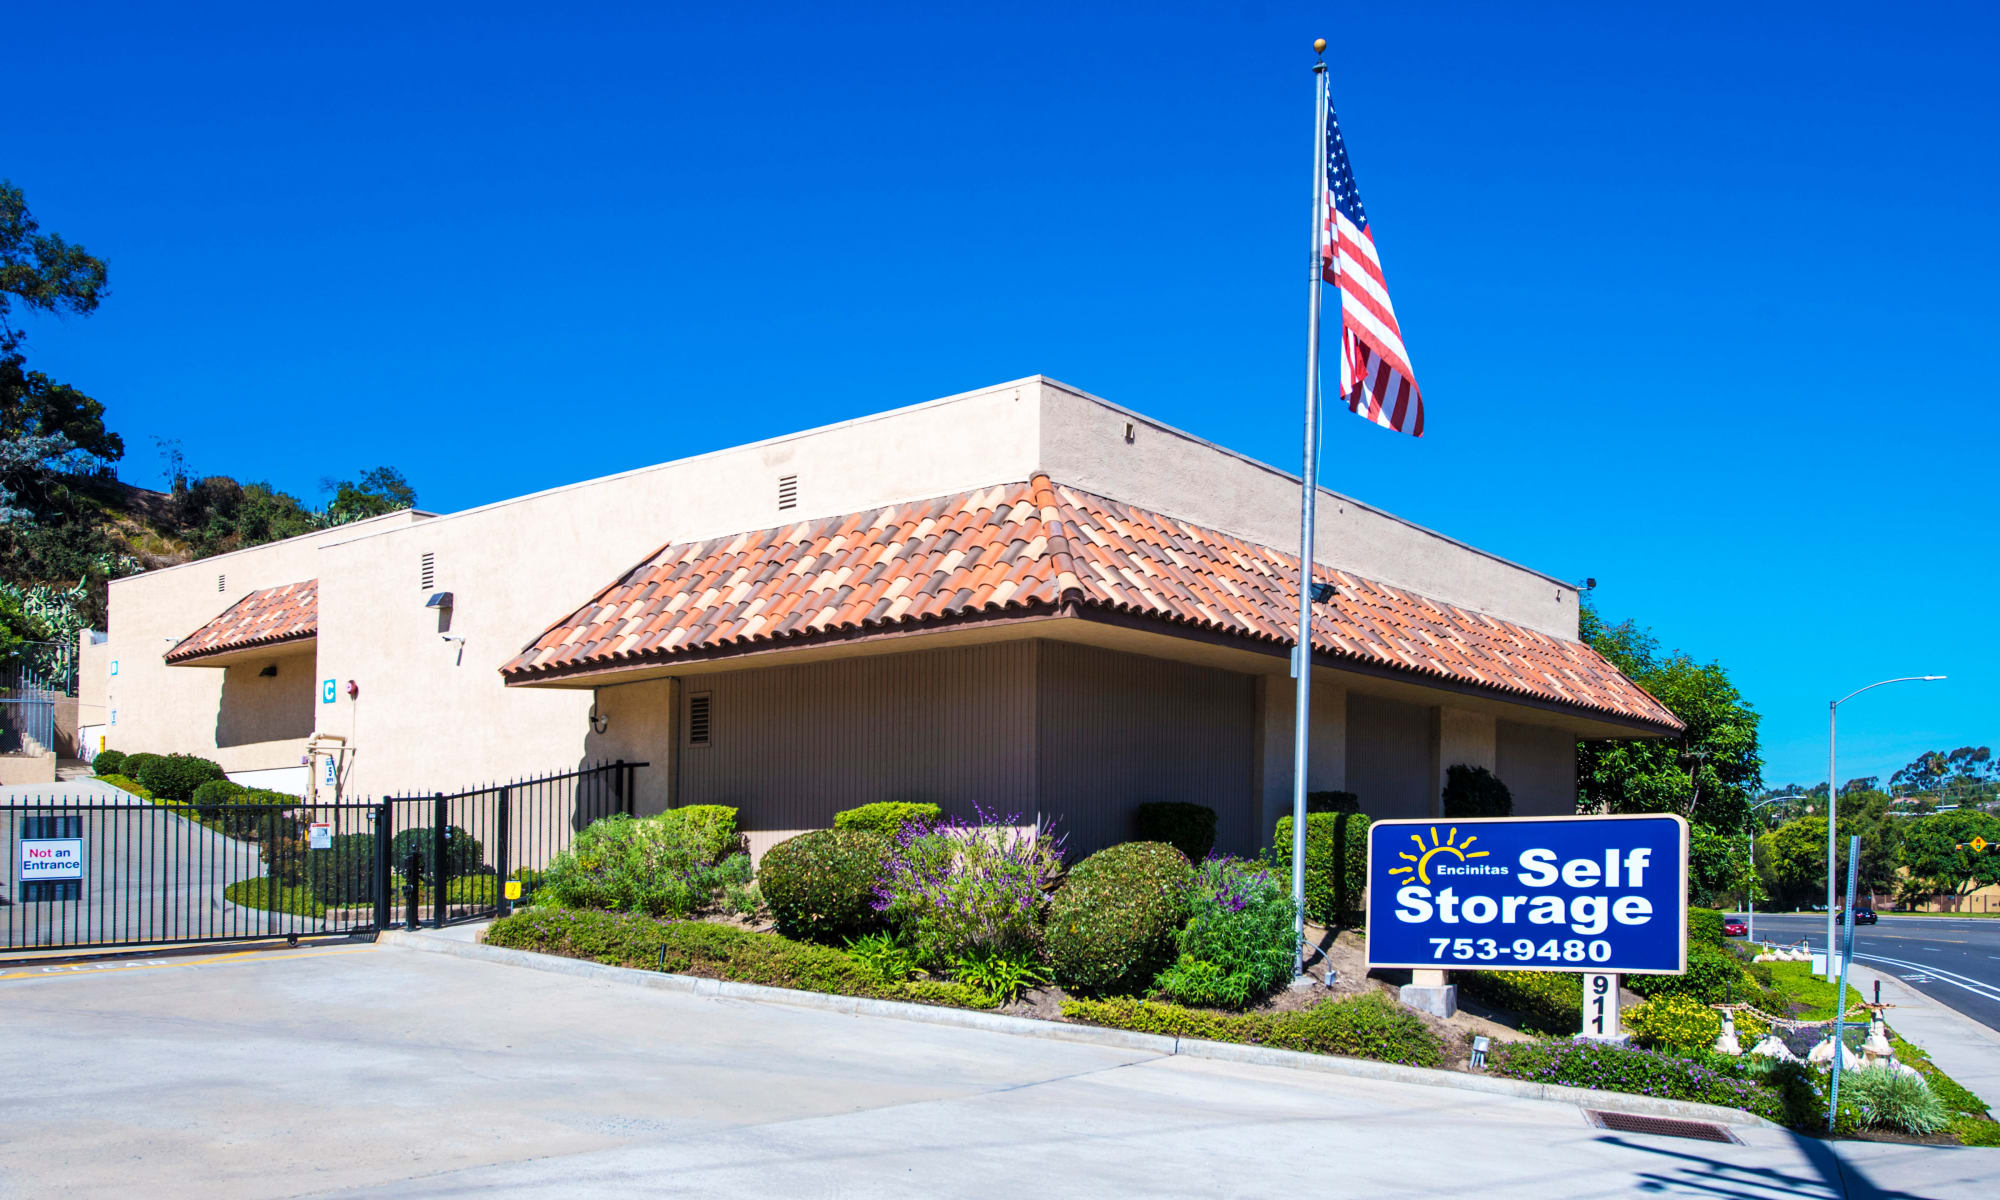 Come see us at Encinitas Self Storage for the best self storage in Encinitas